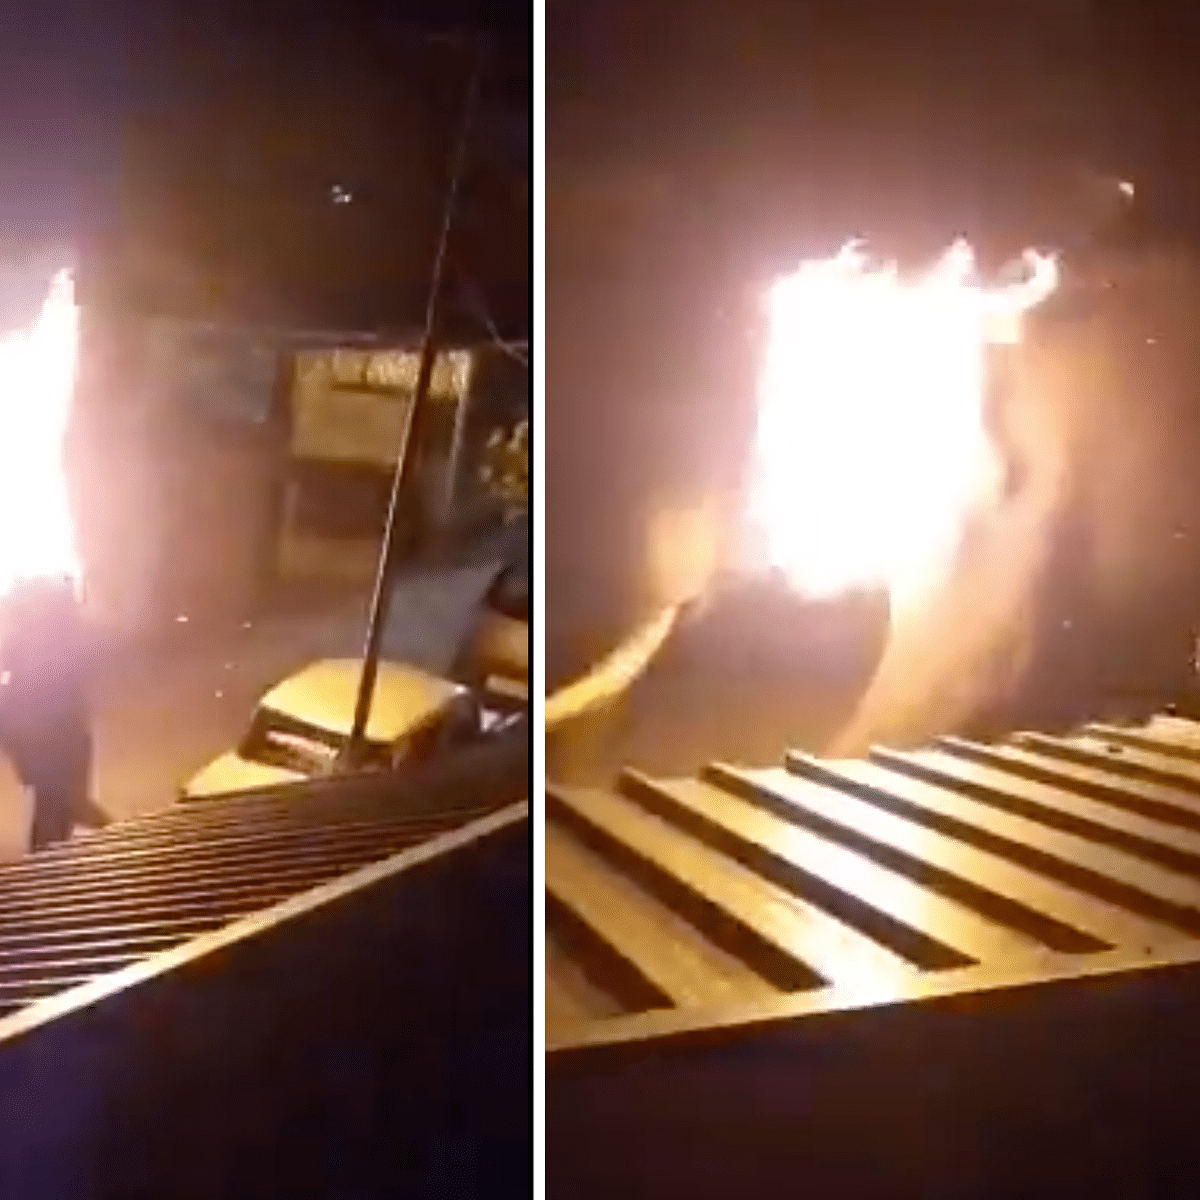 Watch: Shocking visuals show people throwing burning branch at elephant, causing its death